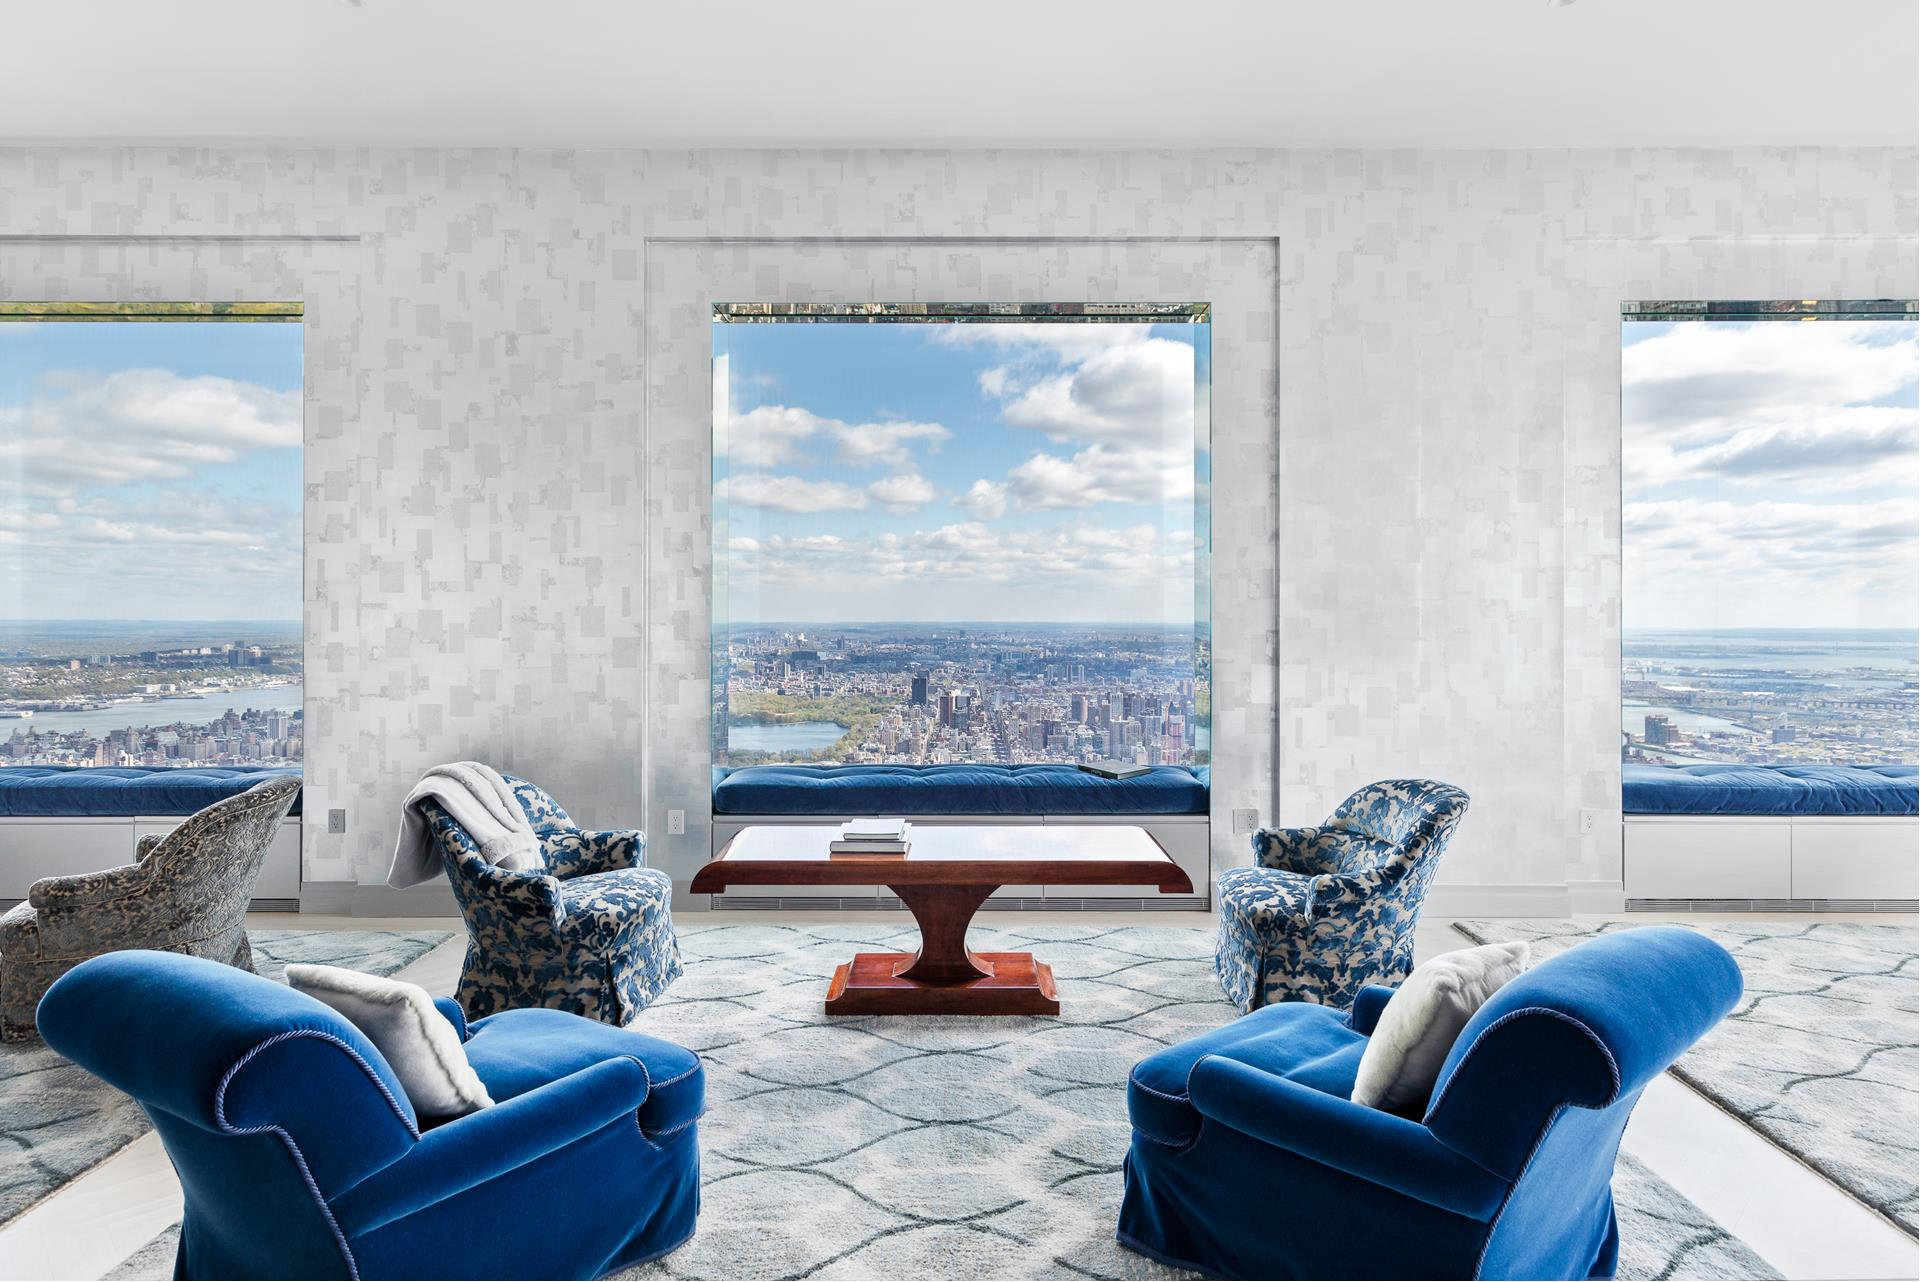 """This residence, located on a high floor of iconic 432 Park Avenue, designed by architect Rafael Violy, has recently been converted from a three-bedroom unit to an elegant two-bedroom home. With a private elevator entry and gallery leading to a grand, corner   living and dining room, this 2,633 square foot high-floor residence offers northern views over Central Park and eastern views toward the East River and beyond, captured in spectacular 10' by 10' windows, under soaring 12'6"""" ceilings. With views to the east,   the eat-in kitchen has a marble floor and countertops, cabinetry of lacquer and natural oak, Miele stainless steel appliances, and Dornbracht polished chrome fixtures. The master bedroom suite features park views, a walk-in dressing room, and a luxurious bathroom   swathed in marble, including marble floors and walls, and cubic marble vanities, while the second bedroom includes an ensuite bath, also rich with marble, and views to the east."""